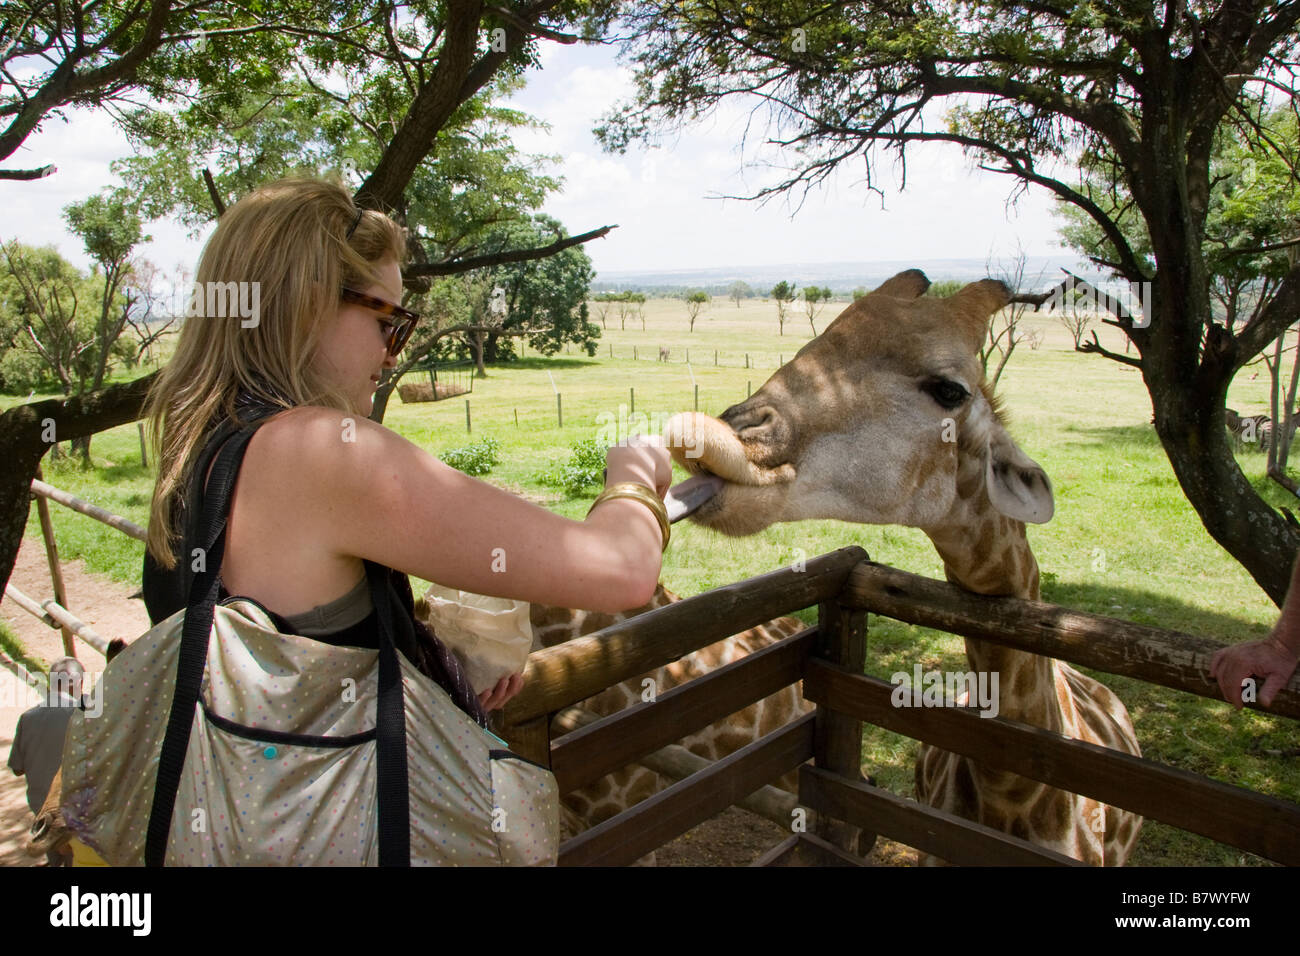 Woman feeds Giraffe Game Park South Africa - Stock Image